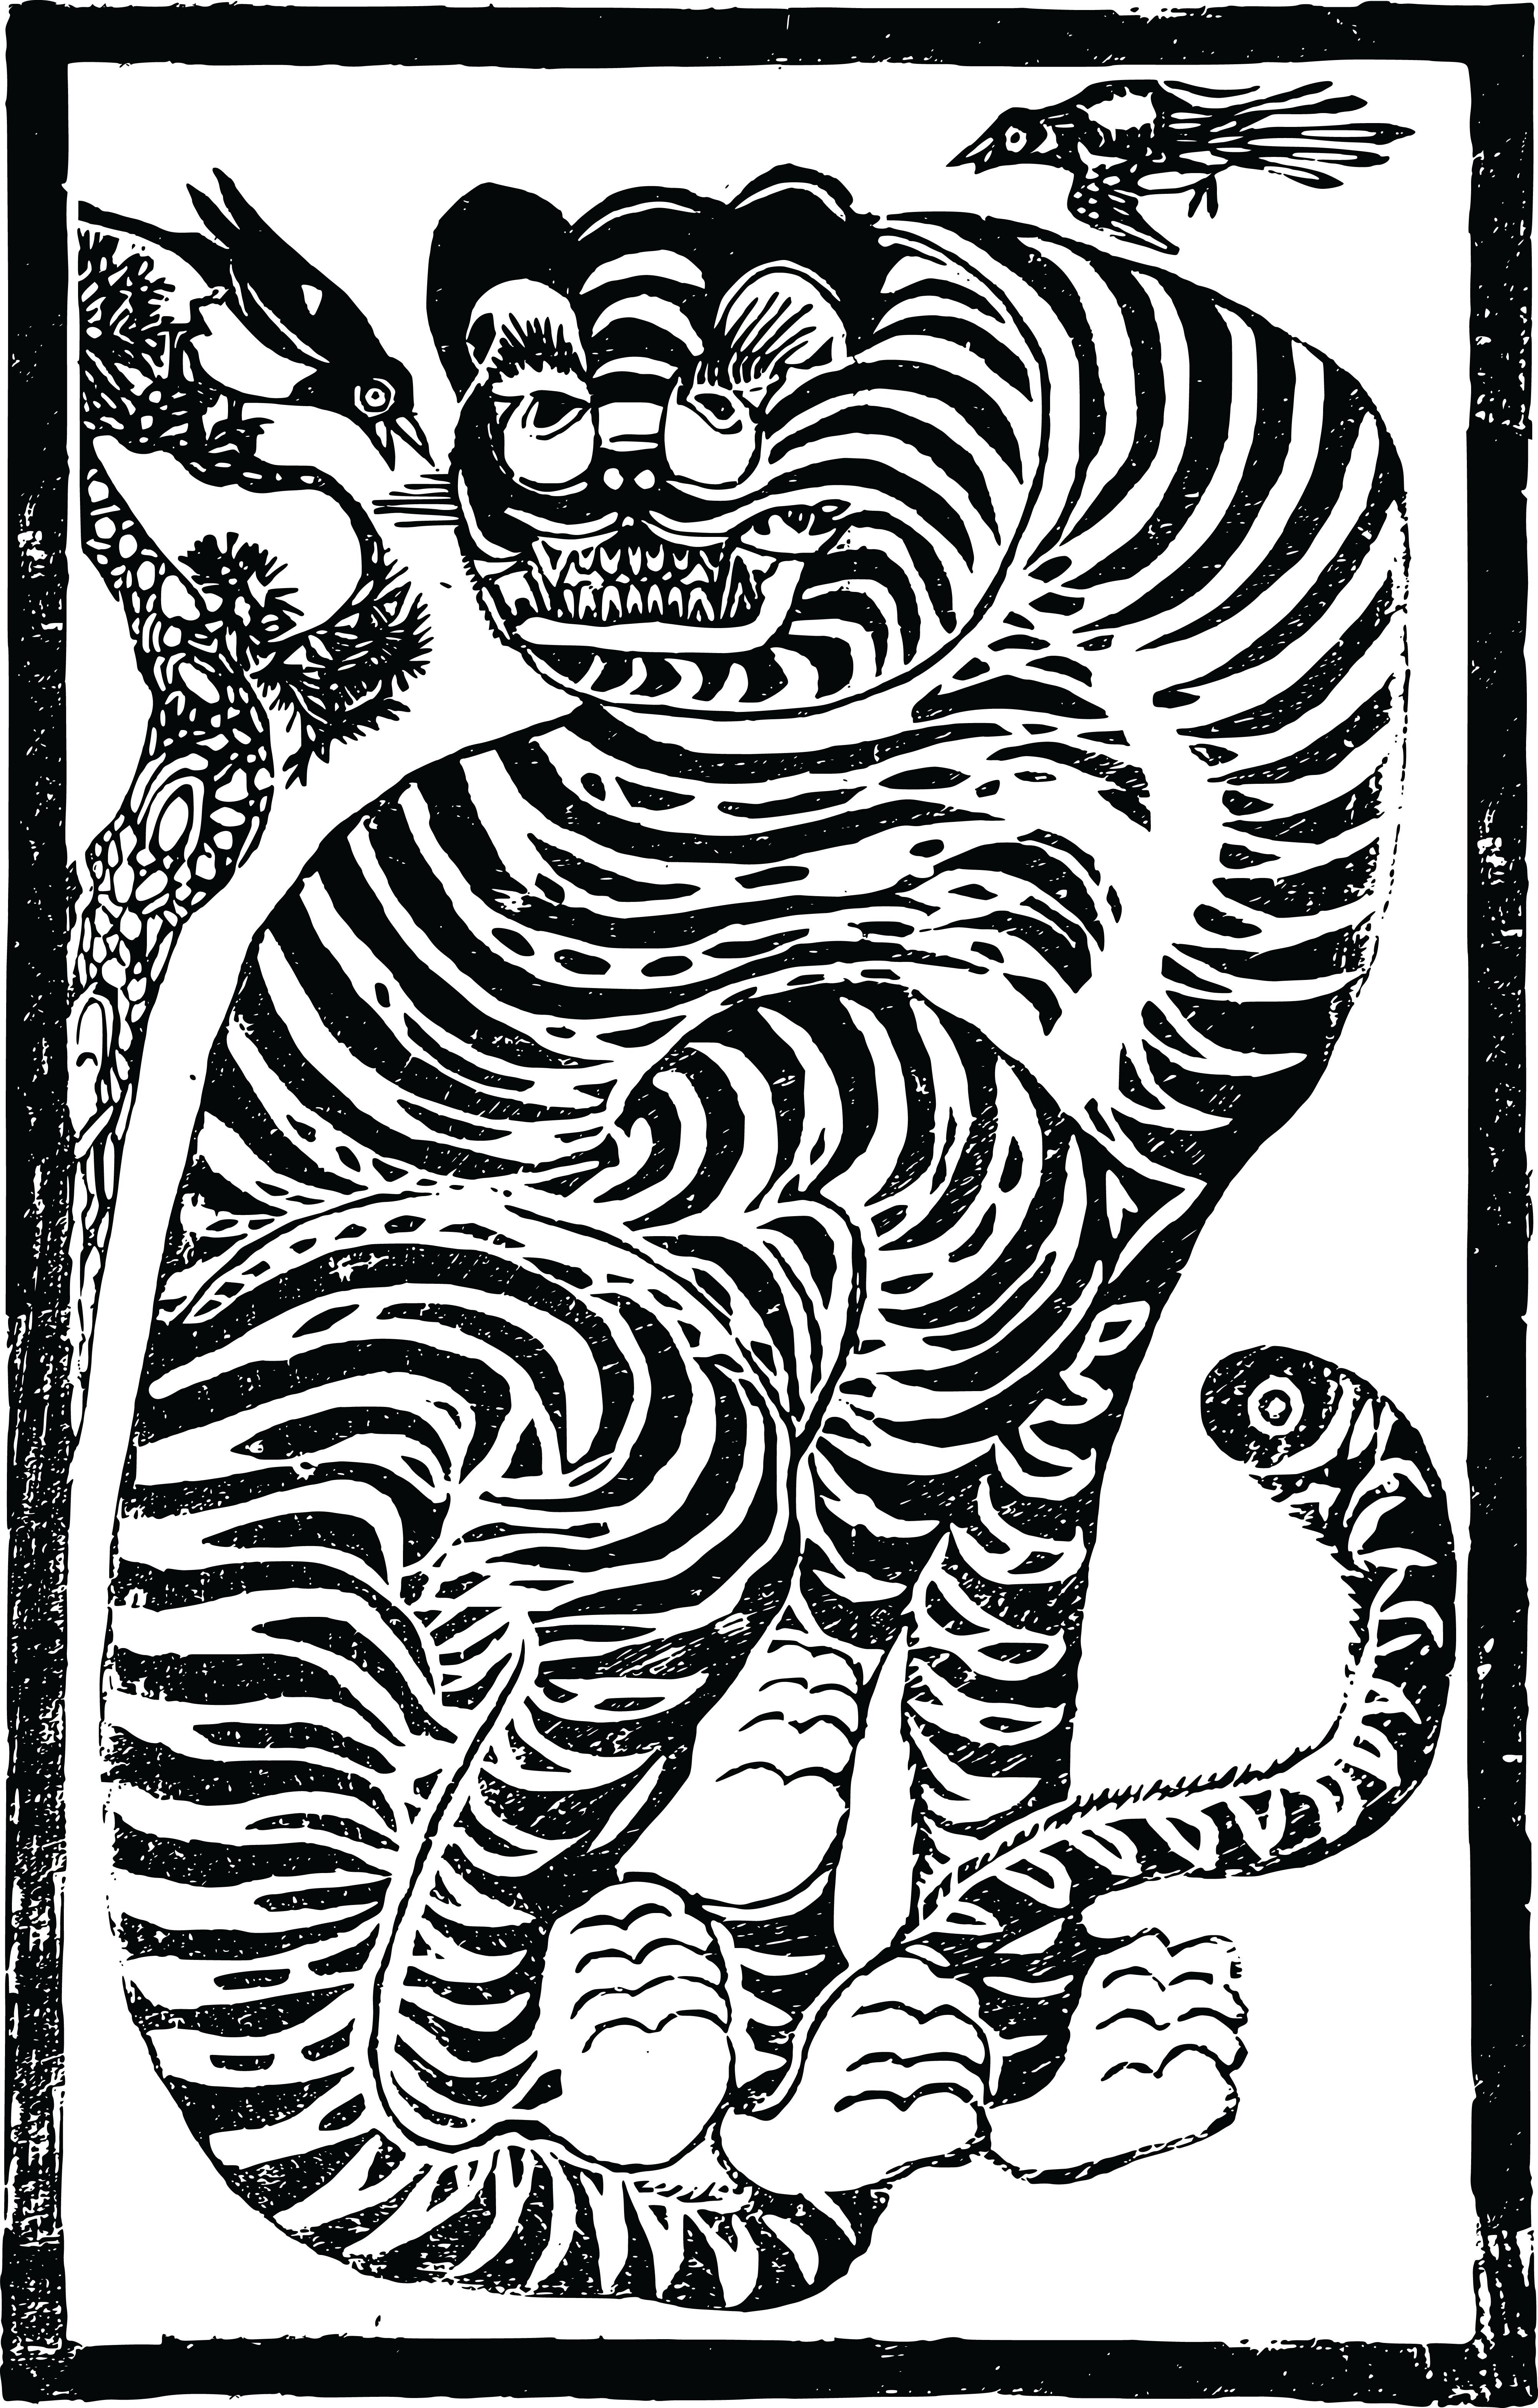 free black and white tiger clipart - photo #28